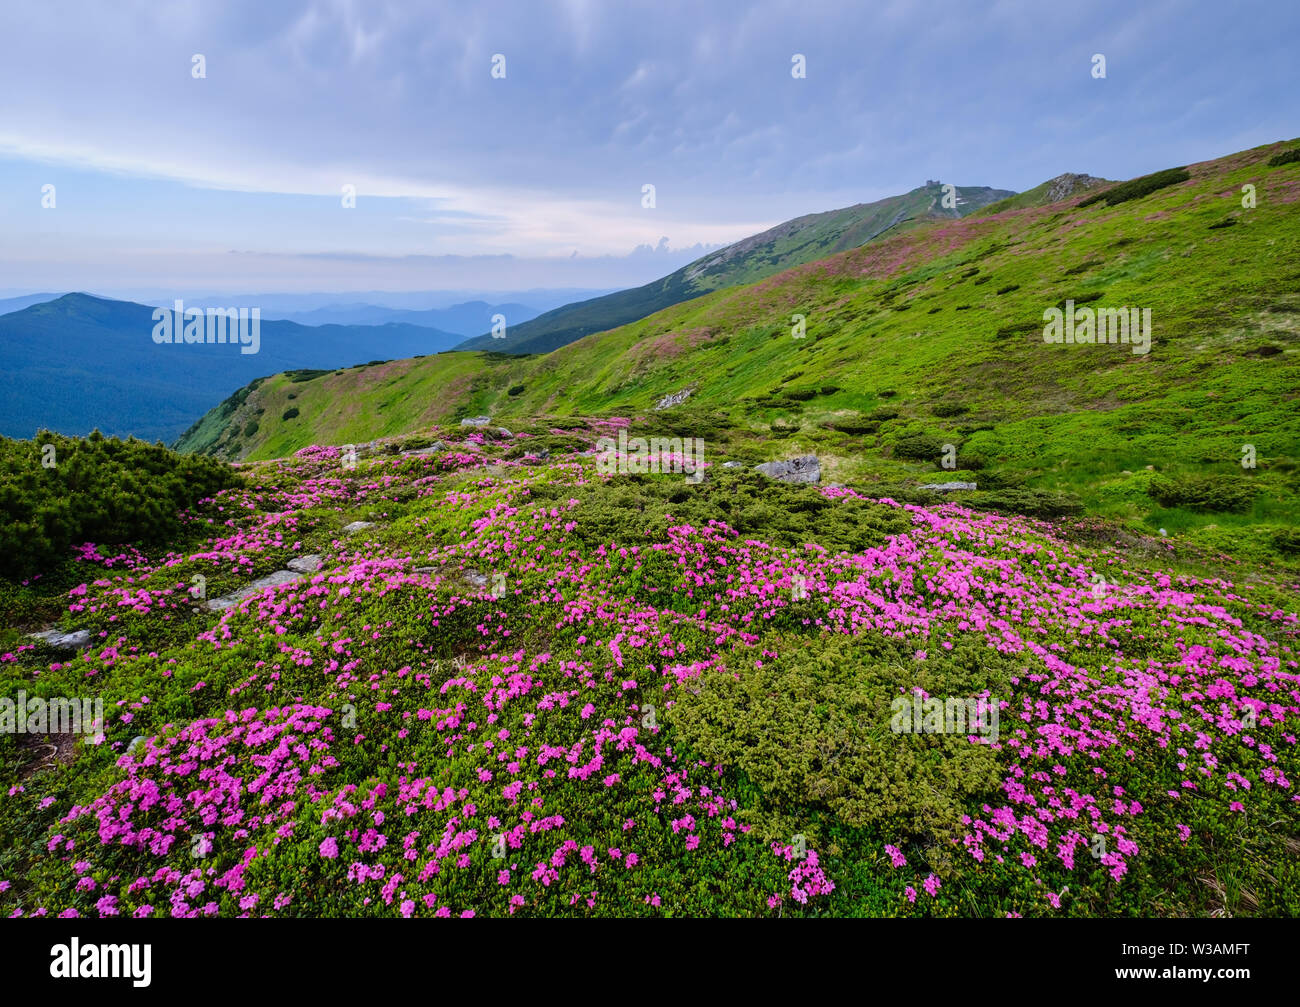 Pink rose rhododendron flowers (in front) on summer mountain slope and Pip Ivan Mount peak behind. Carpathian, Chornohora, Ukraine. - Stock Image